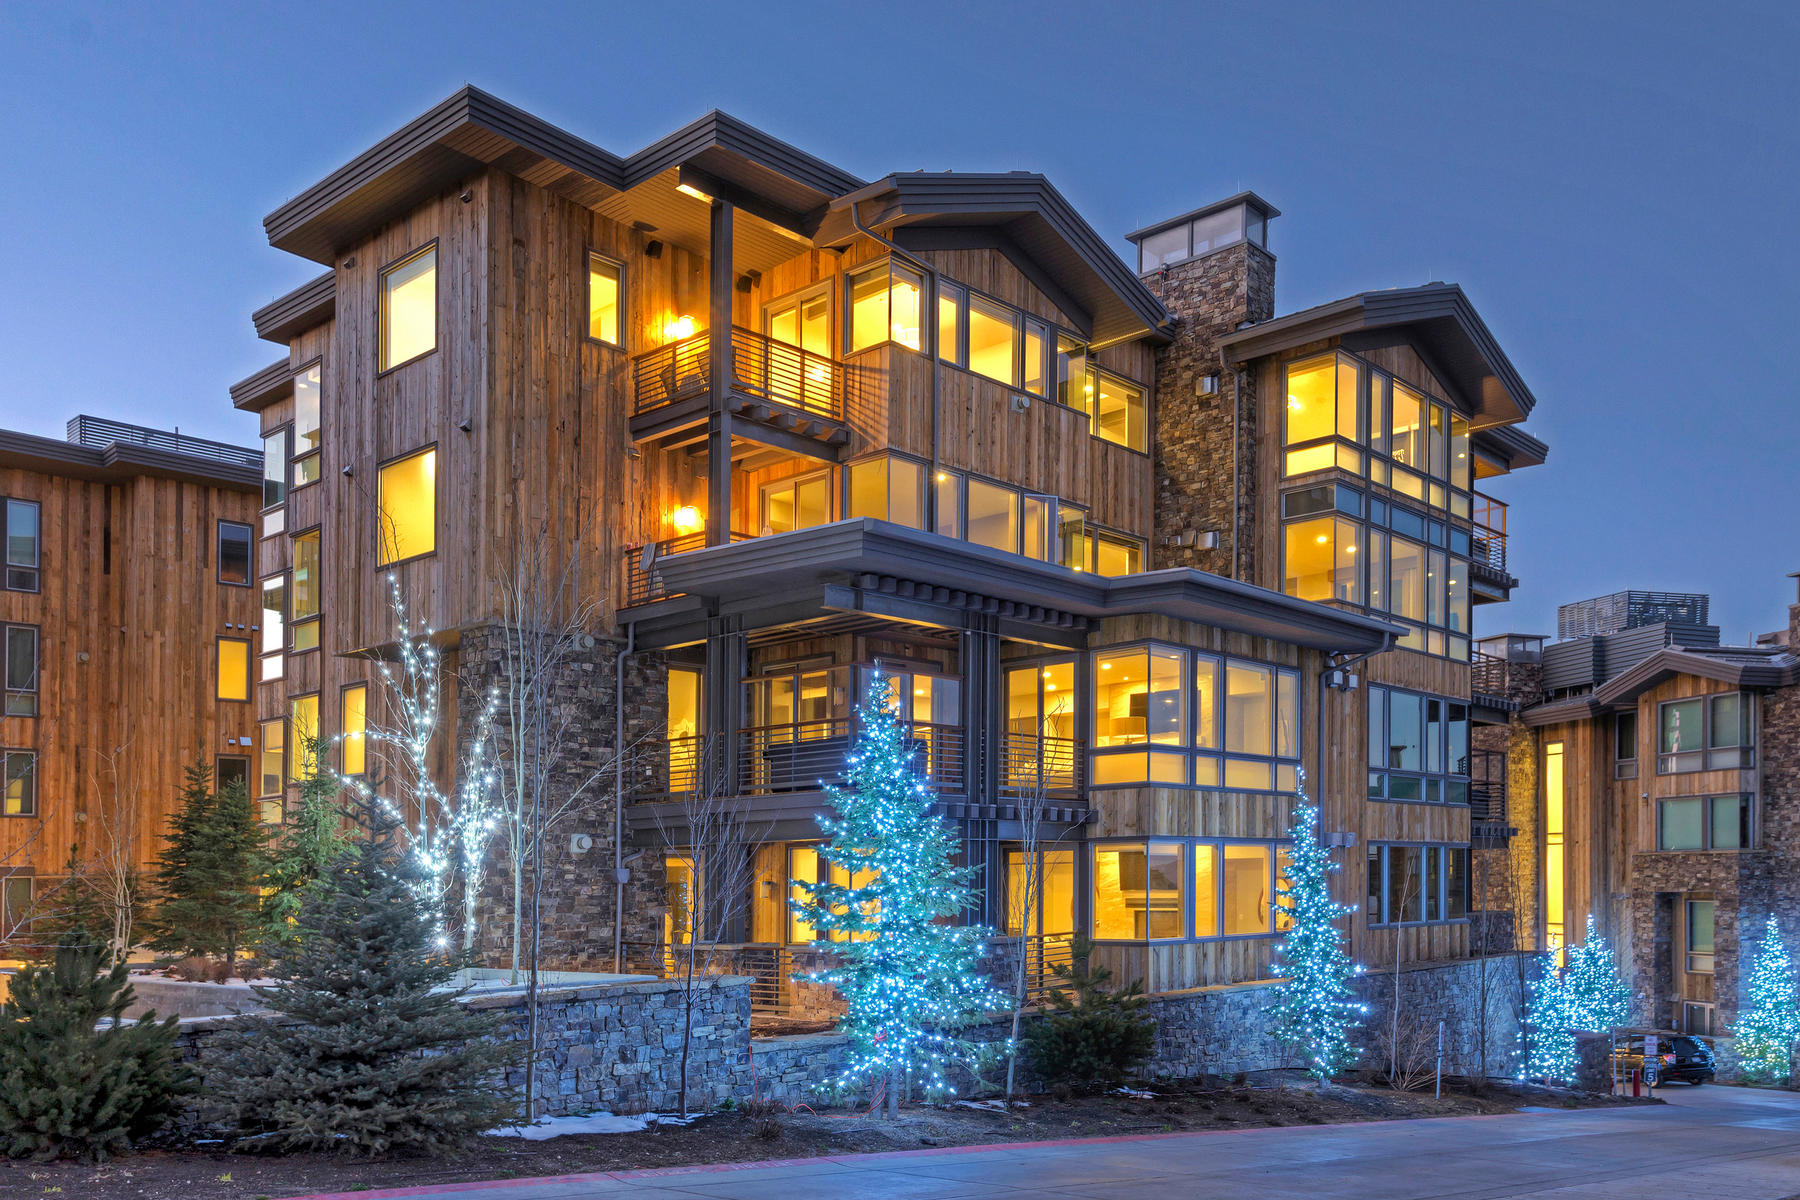 شقة بعمارة للـ Sale في Brand New Turn-Key Ski-in/Ski-out Penthouse at Deer Valley 7101 Stein Cir #621 Park City, Utah 84060 United States